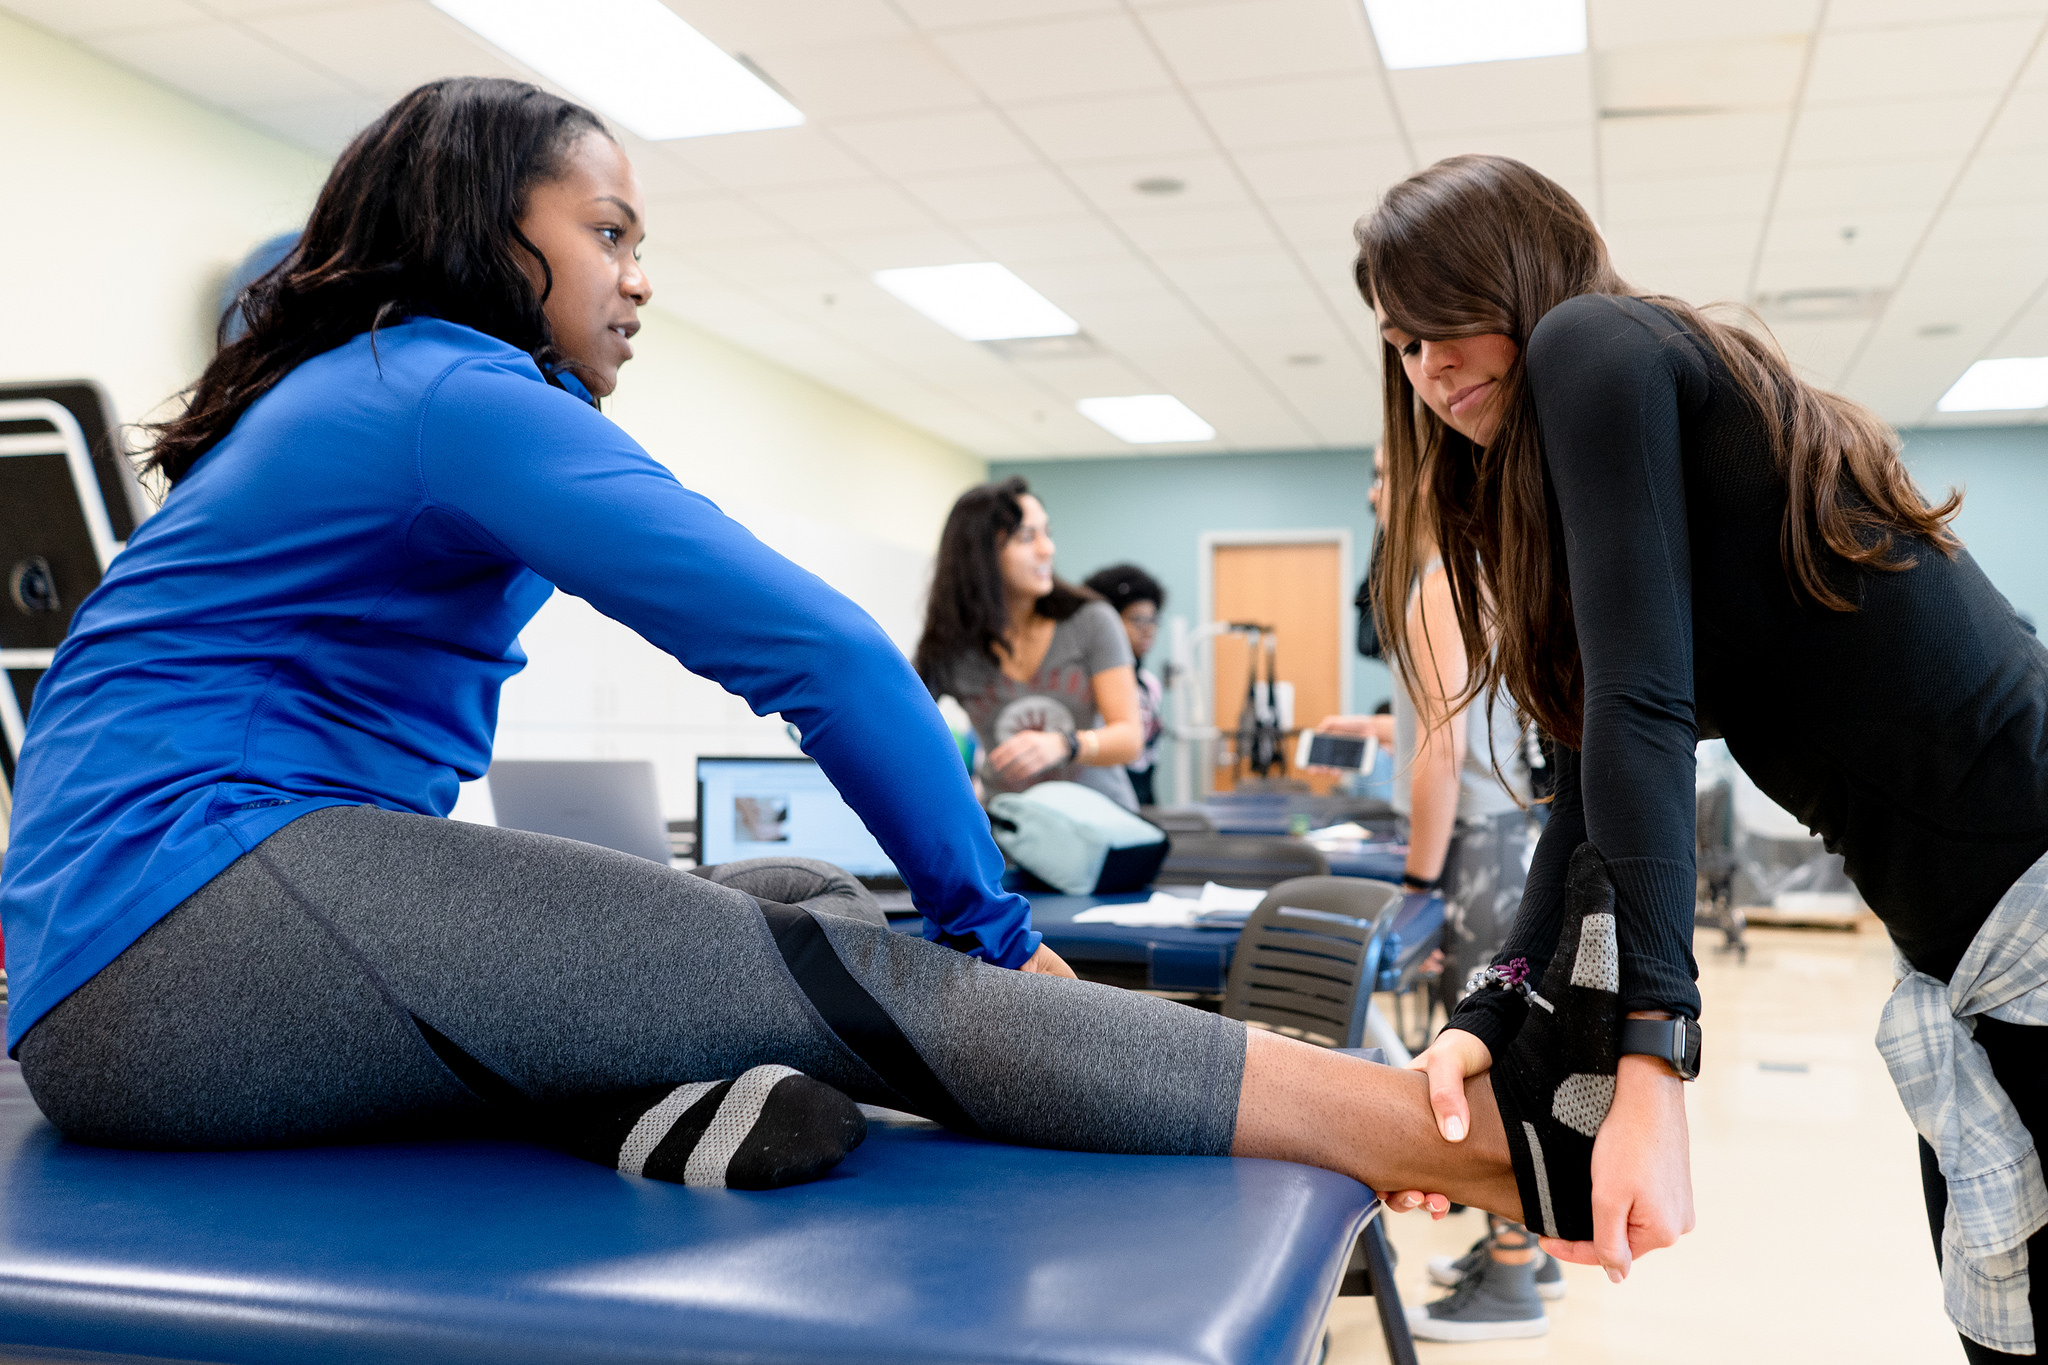 Physical Therapy Nicole Wertheim College Of Nursing Health Sciences Florida International University